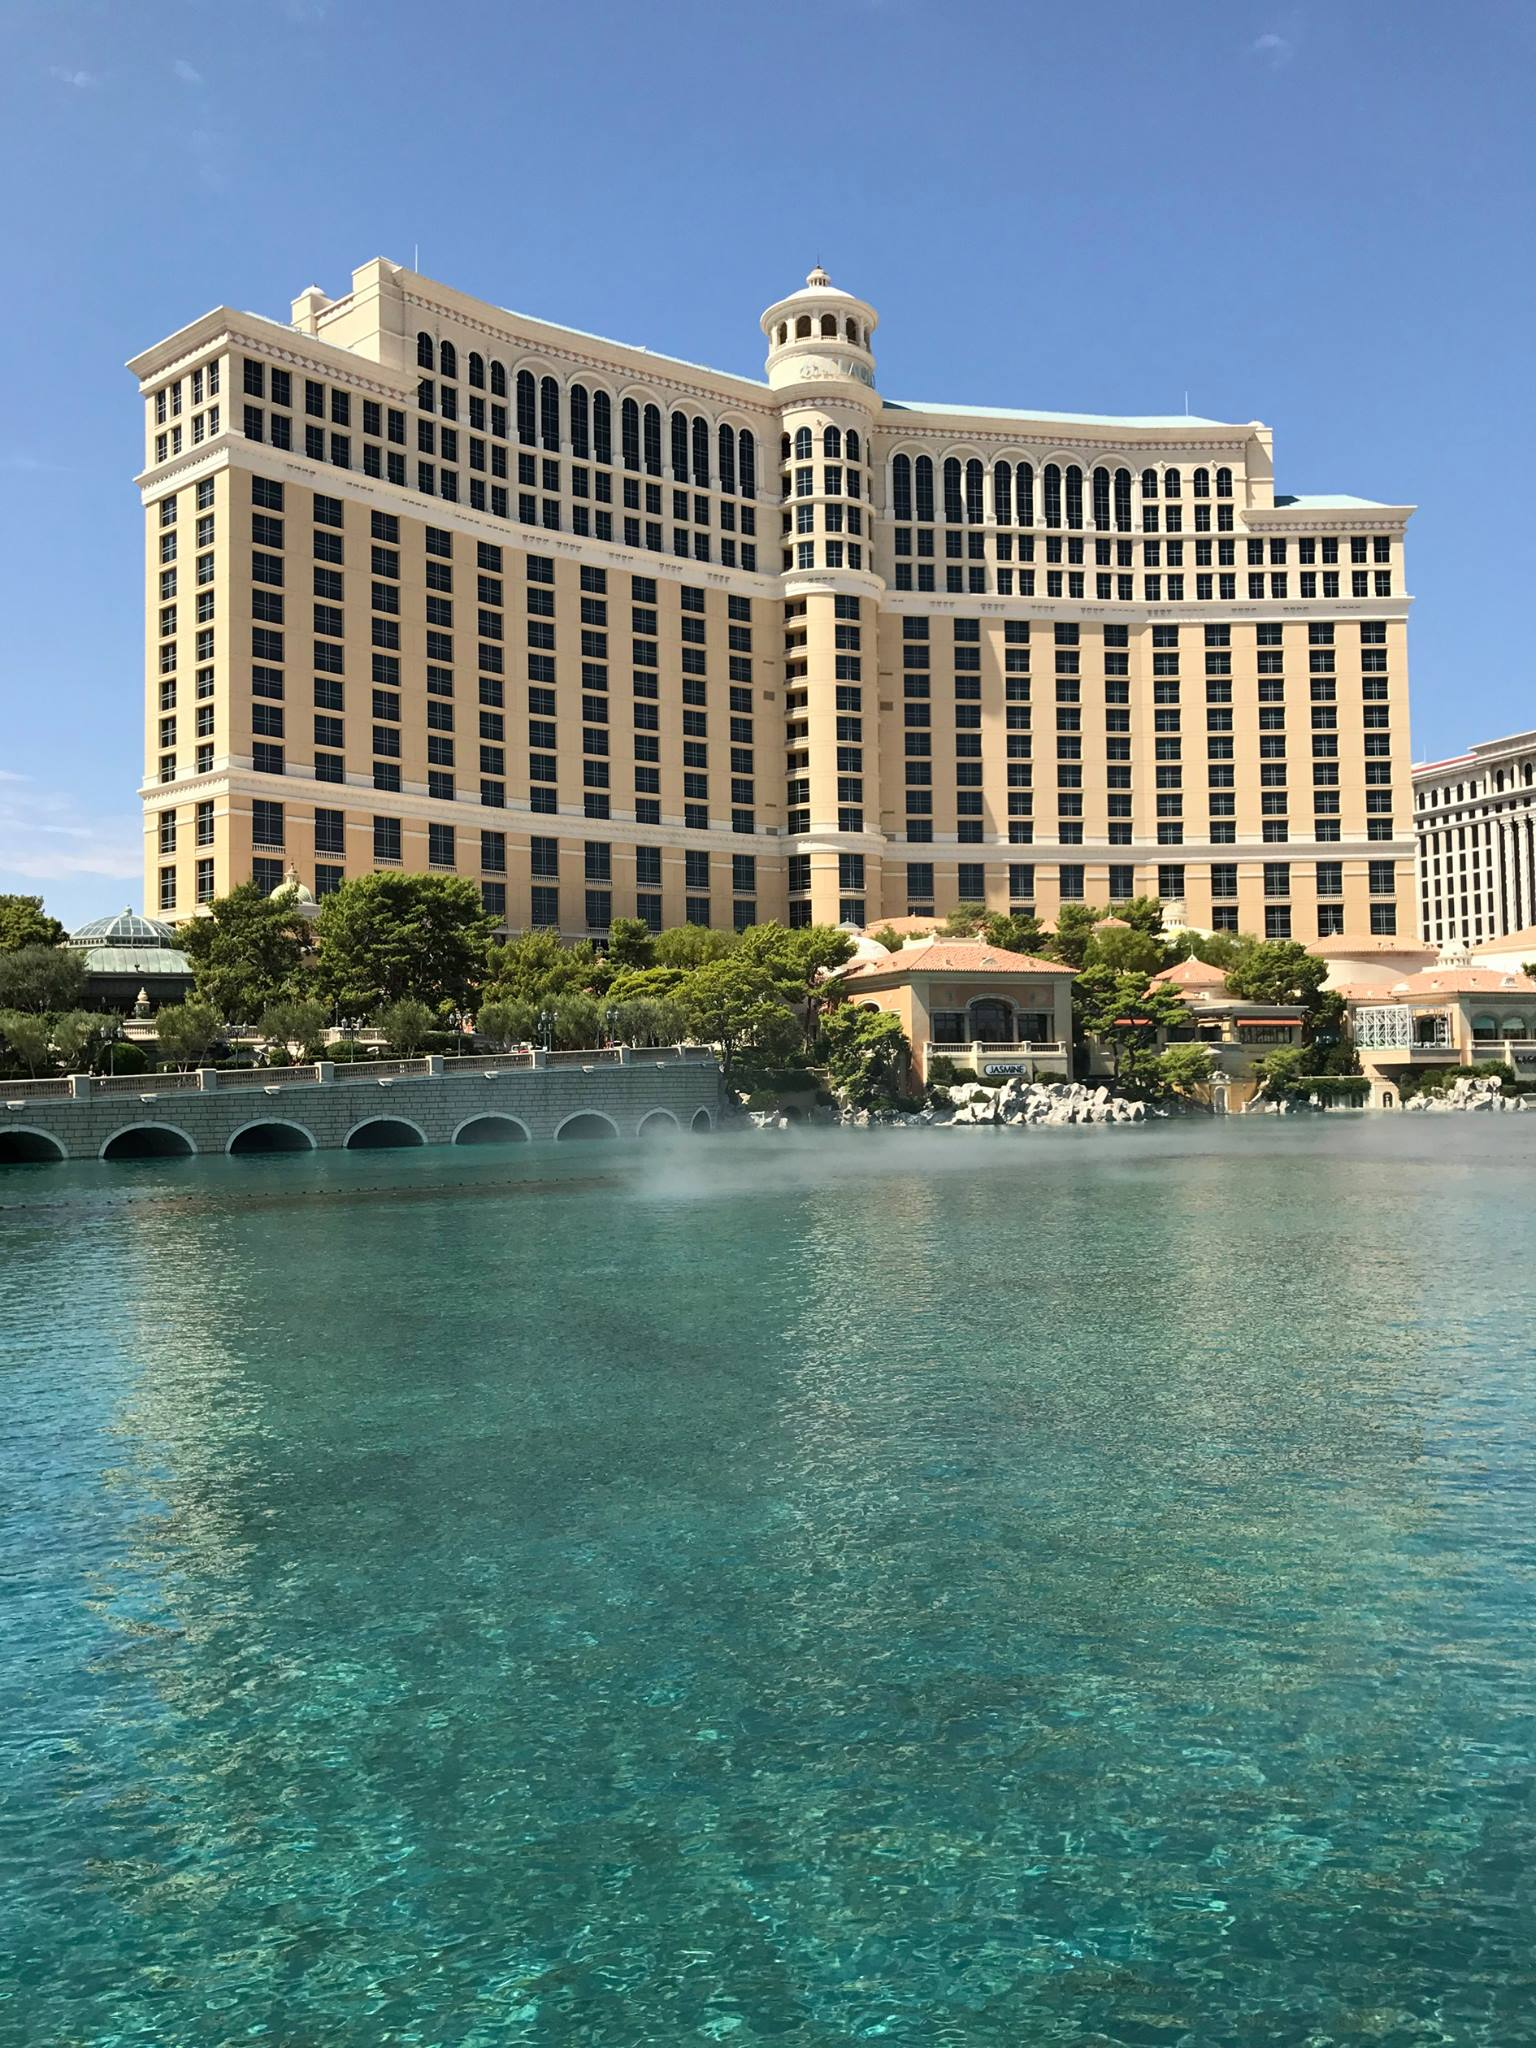 Picture of Bellagio hotel and lake